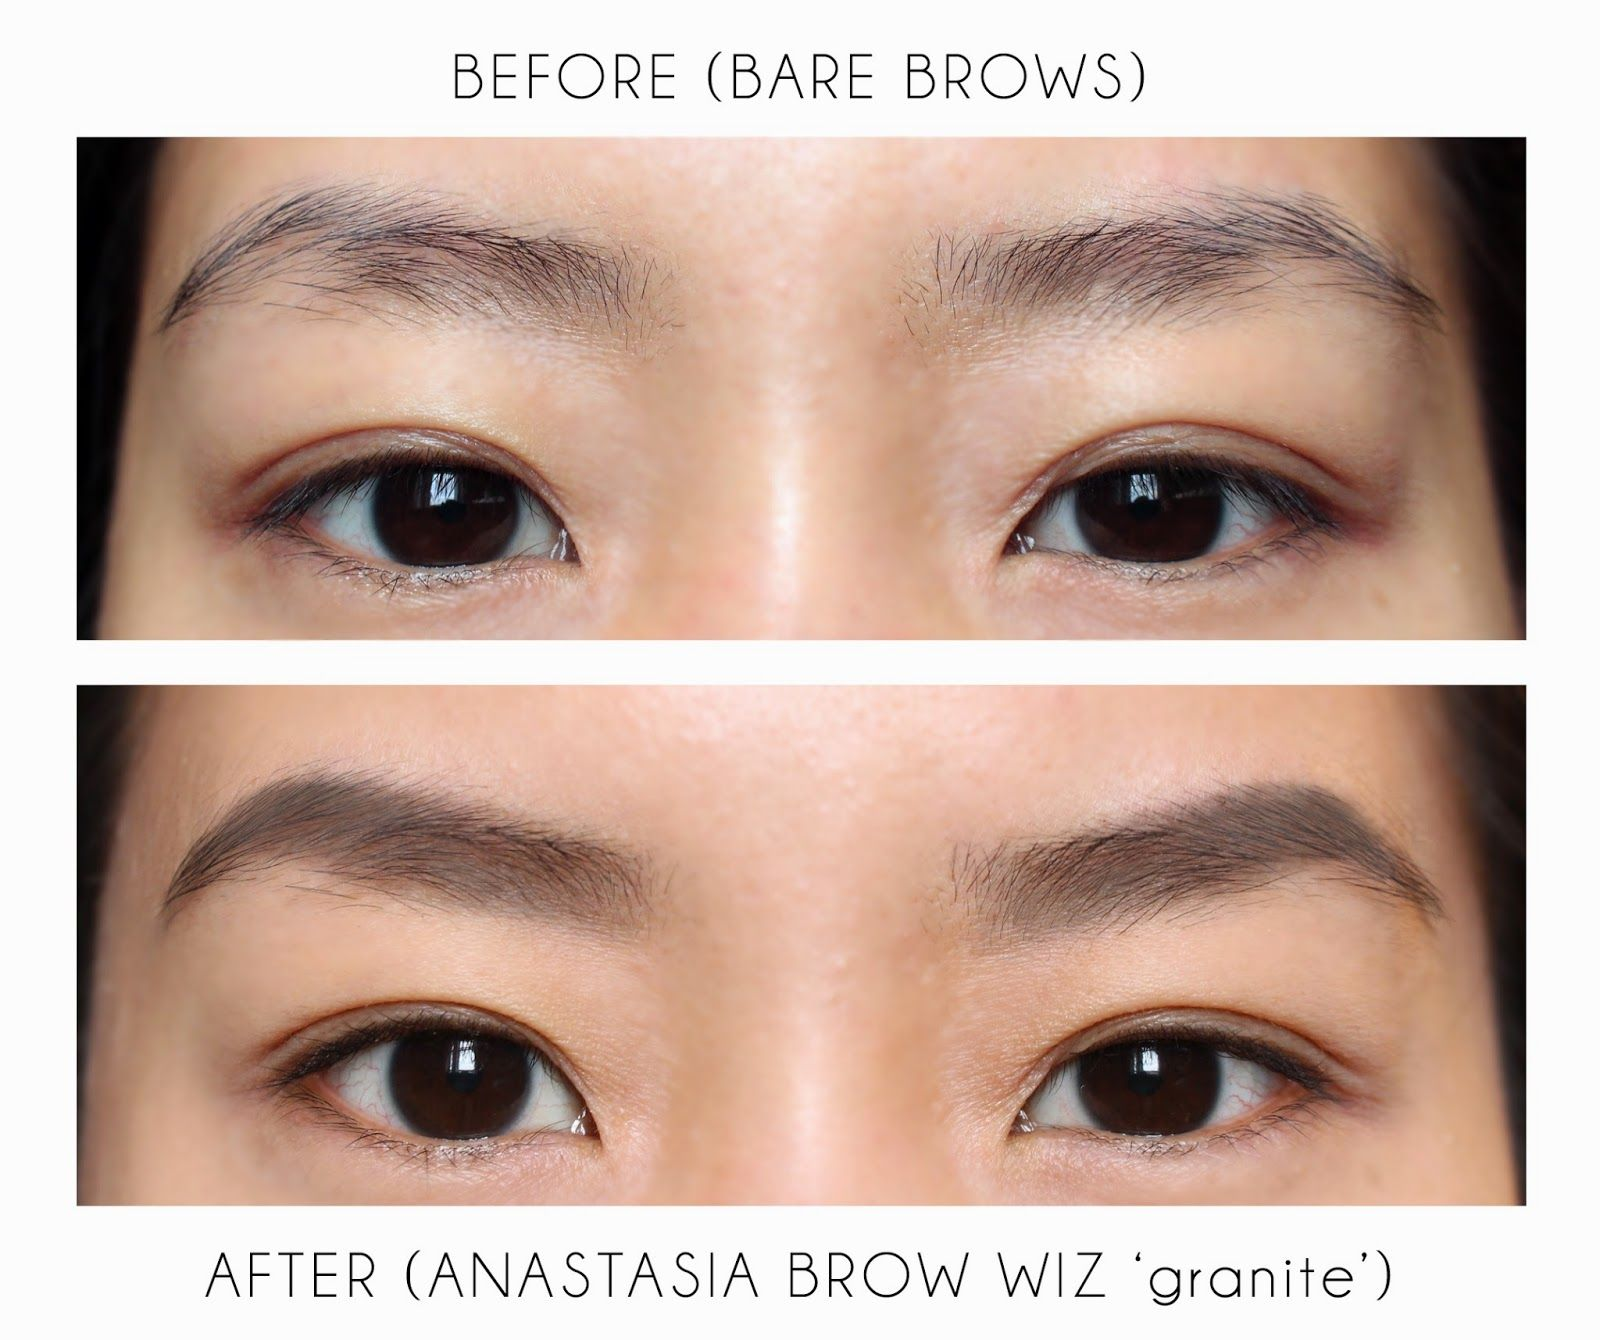 Anastasia Brow Wiz Eyebrow Pencil In Granite Is A Great Match For